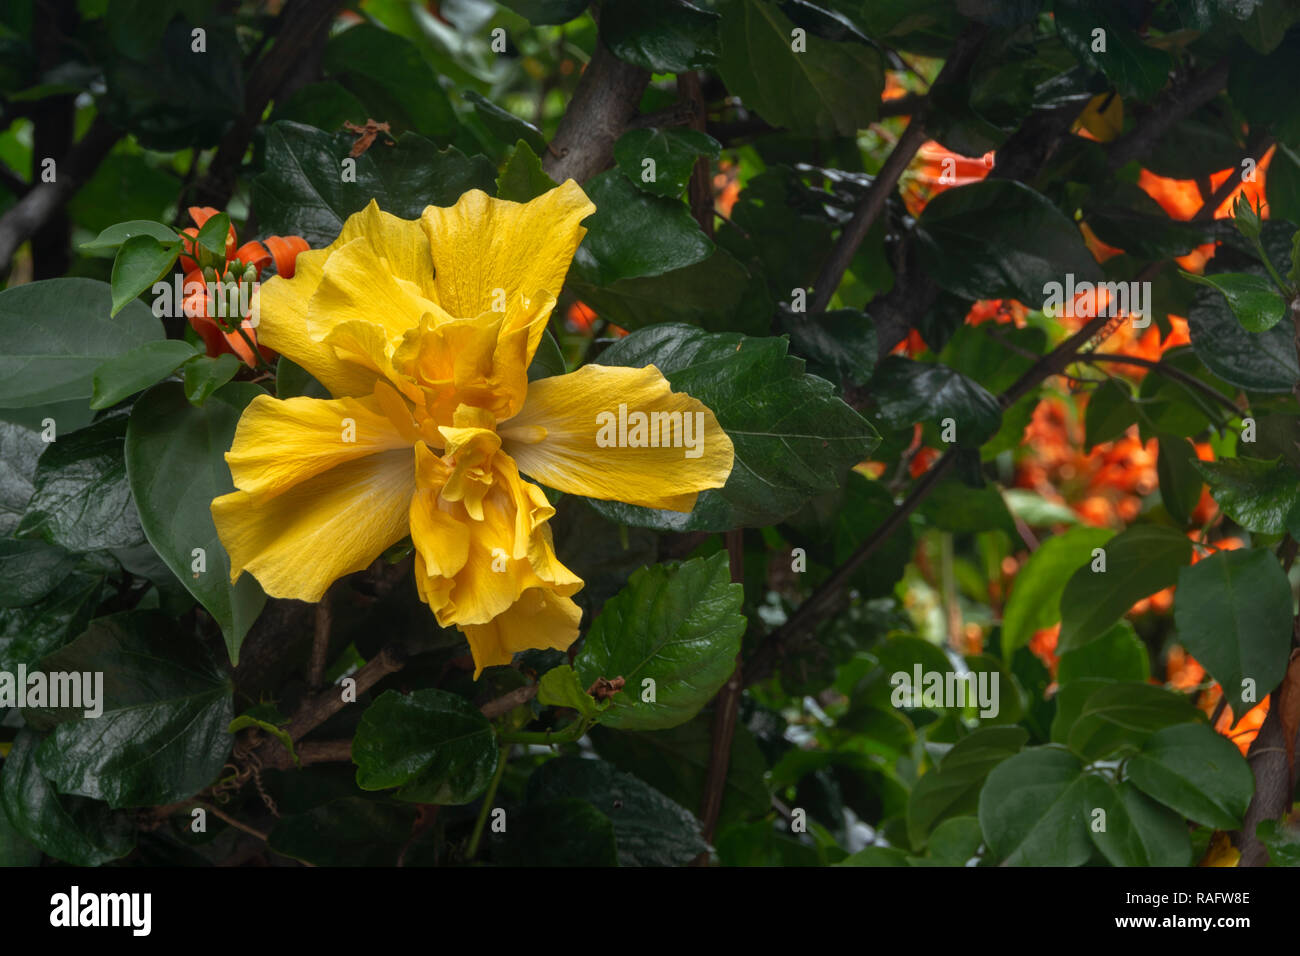 Yellow Double Hibiscus Flower With Green Leaves And Orange Trumpet